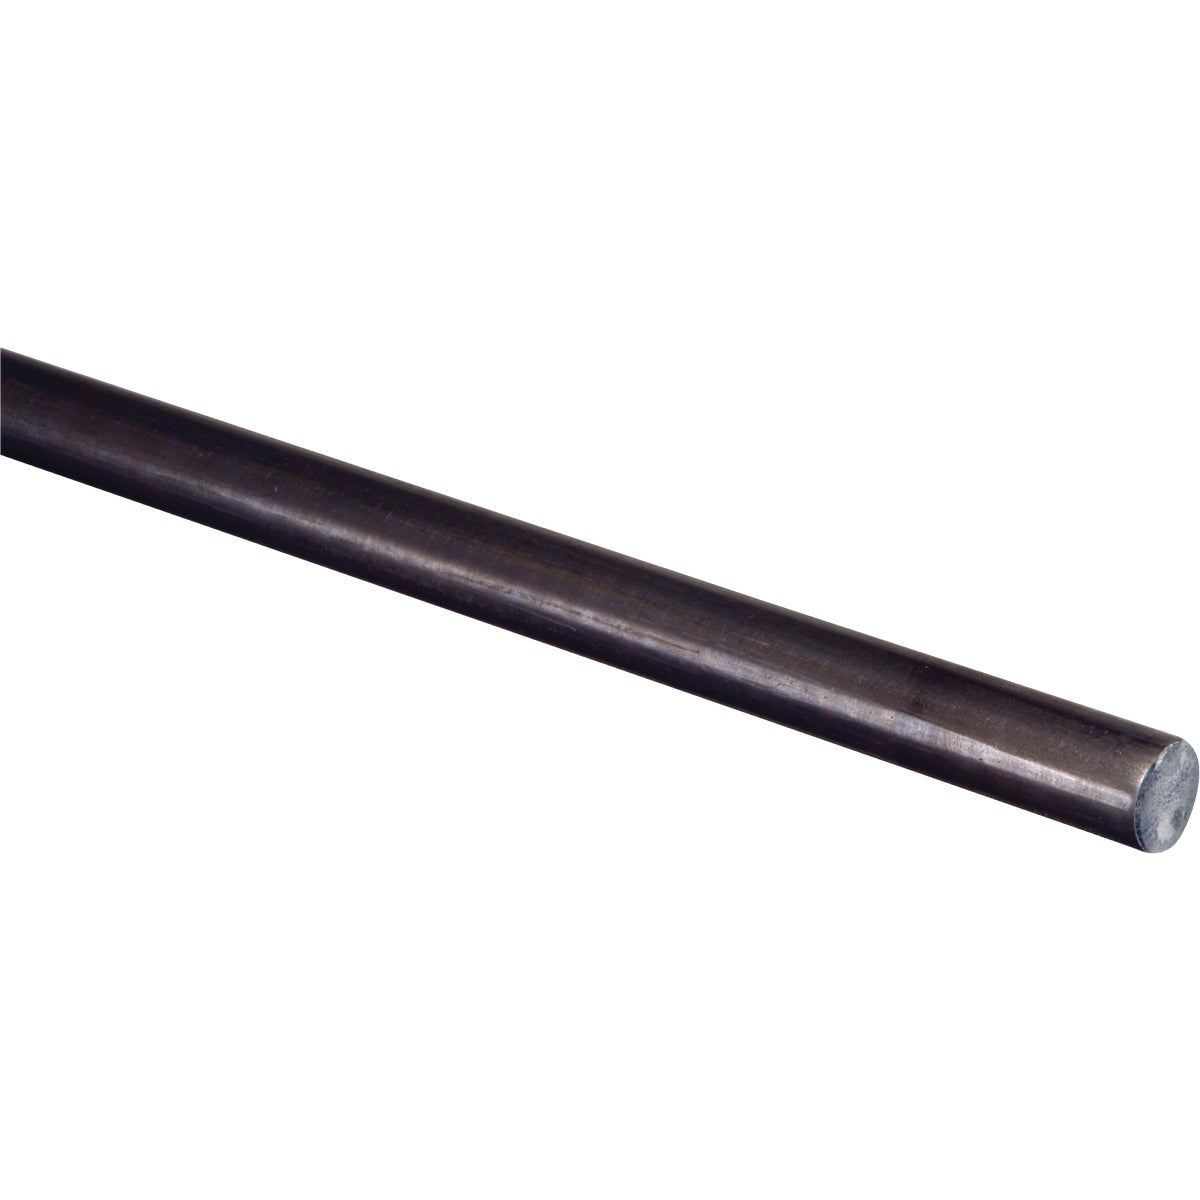 1/2X3' CR RND STEEL ROD - N301192 by National Mfg Co